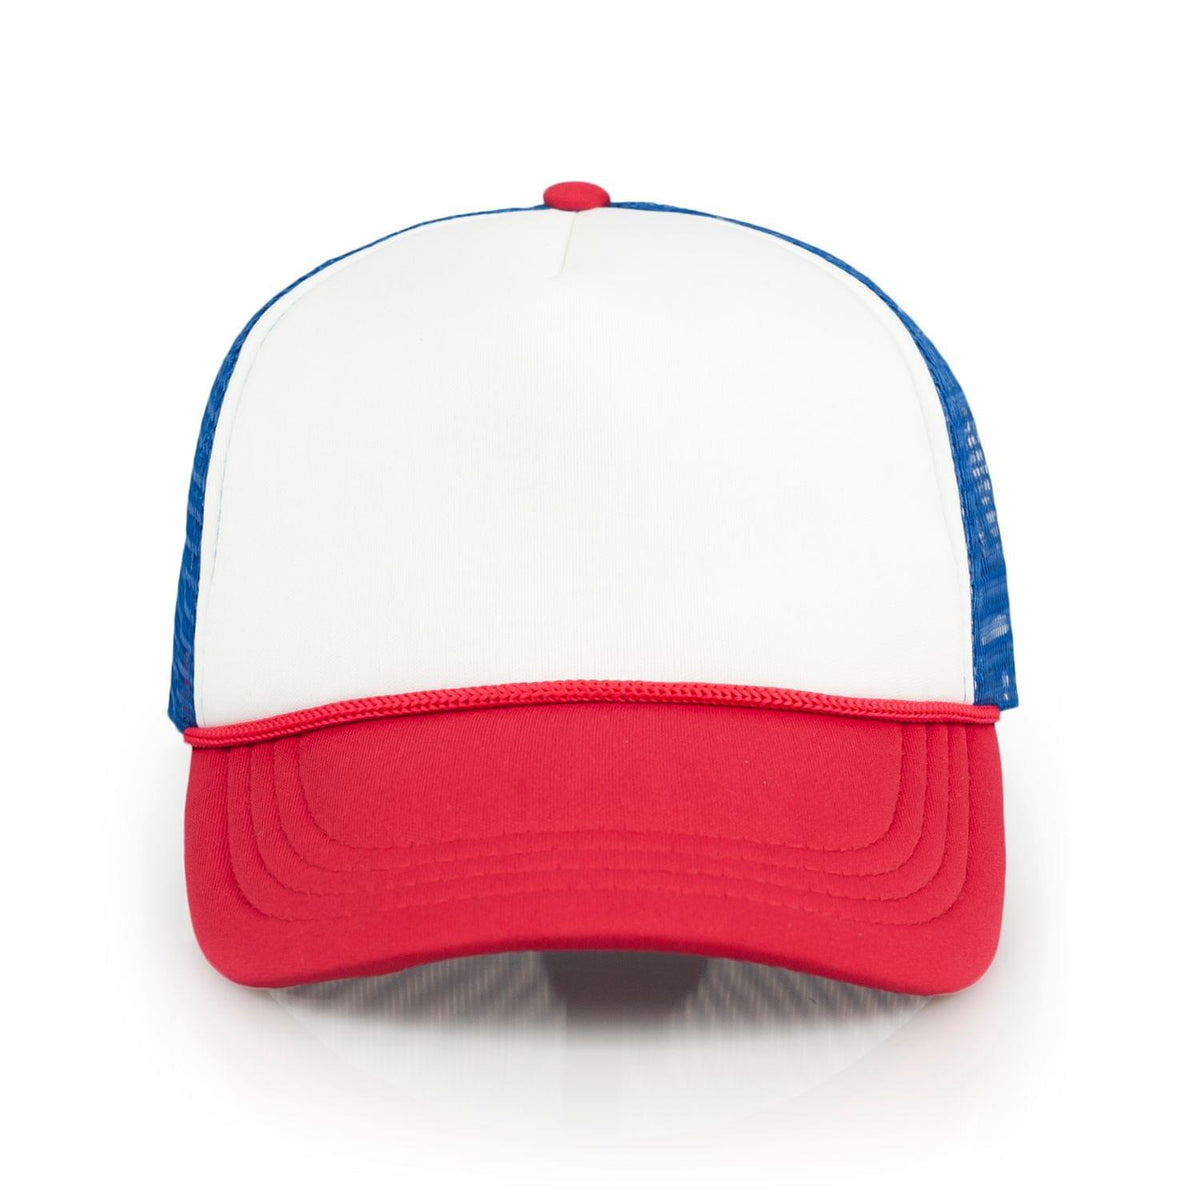 Stranger Things Mesh Red White & Blue Vintage Mesh Trucker Cap